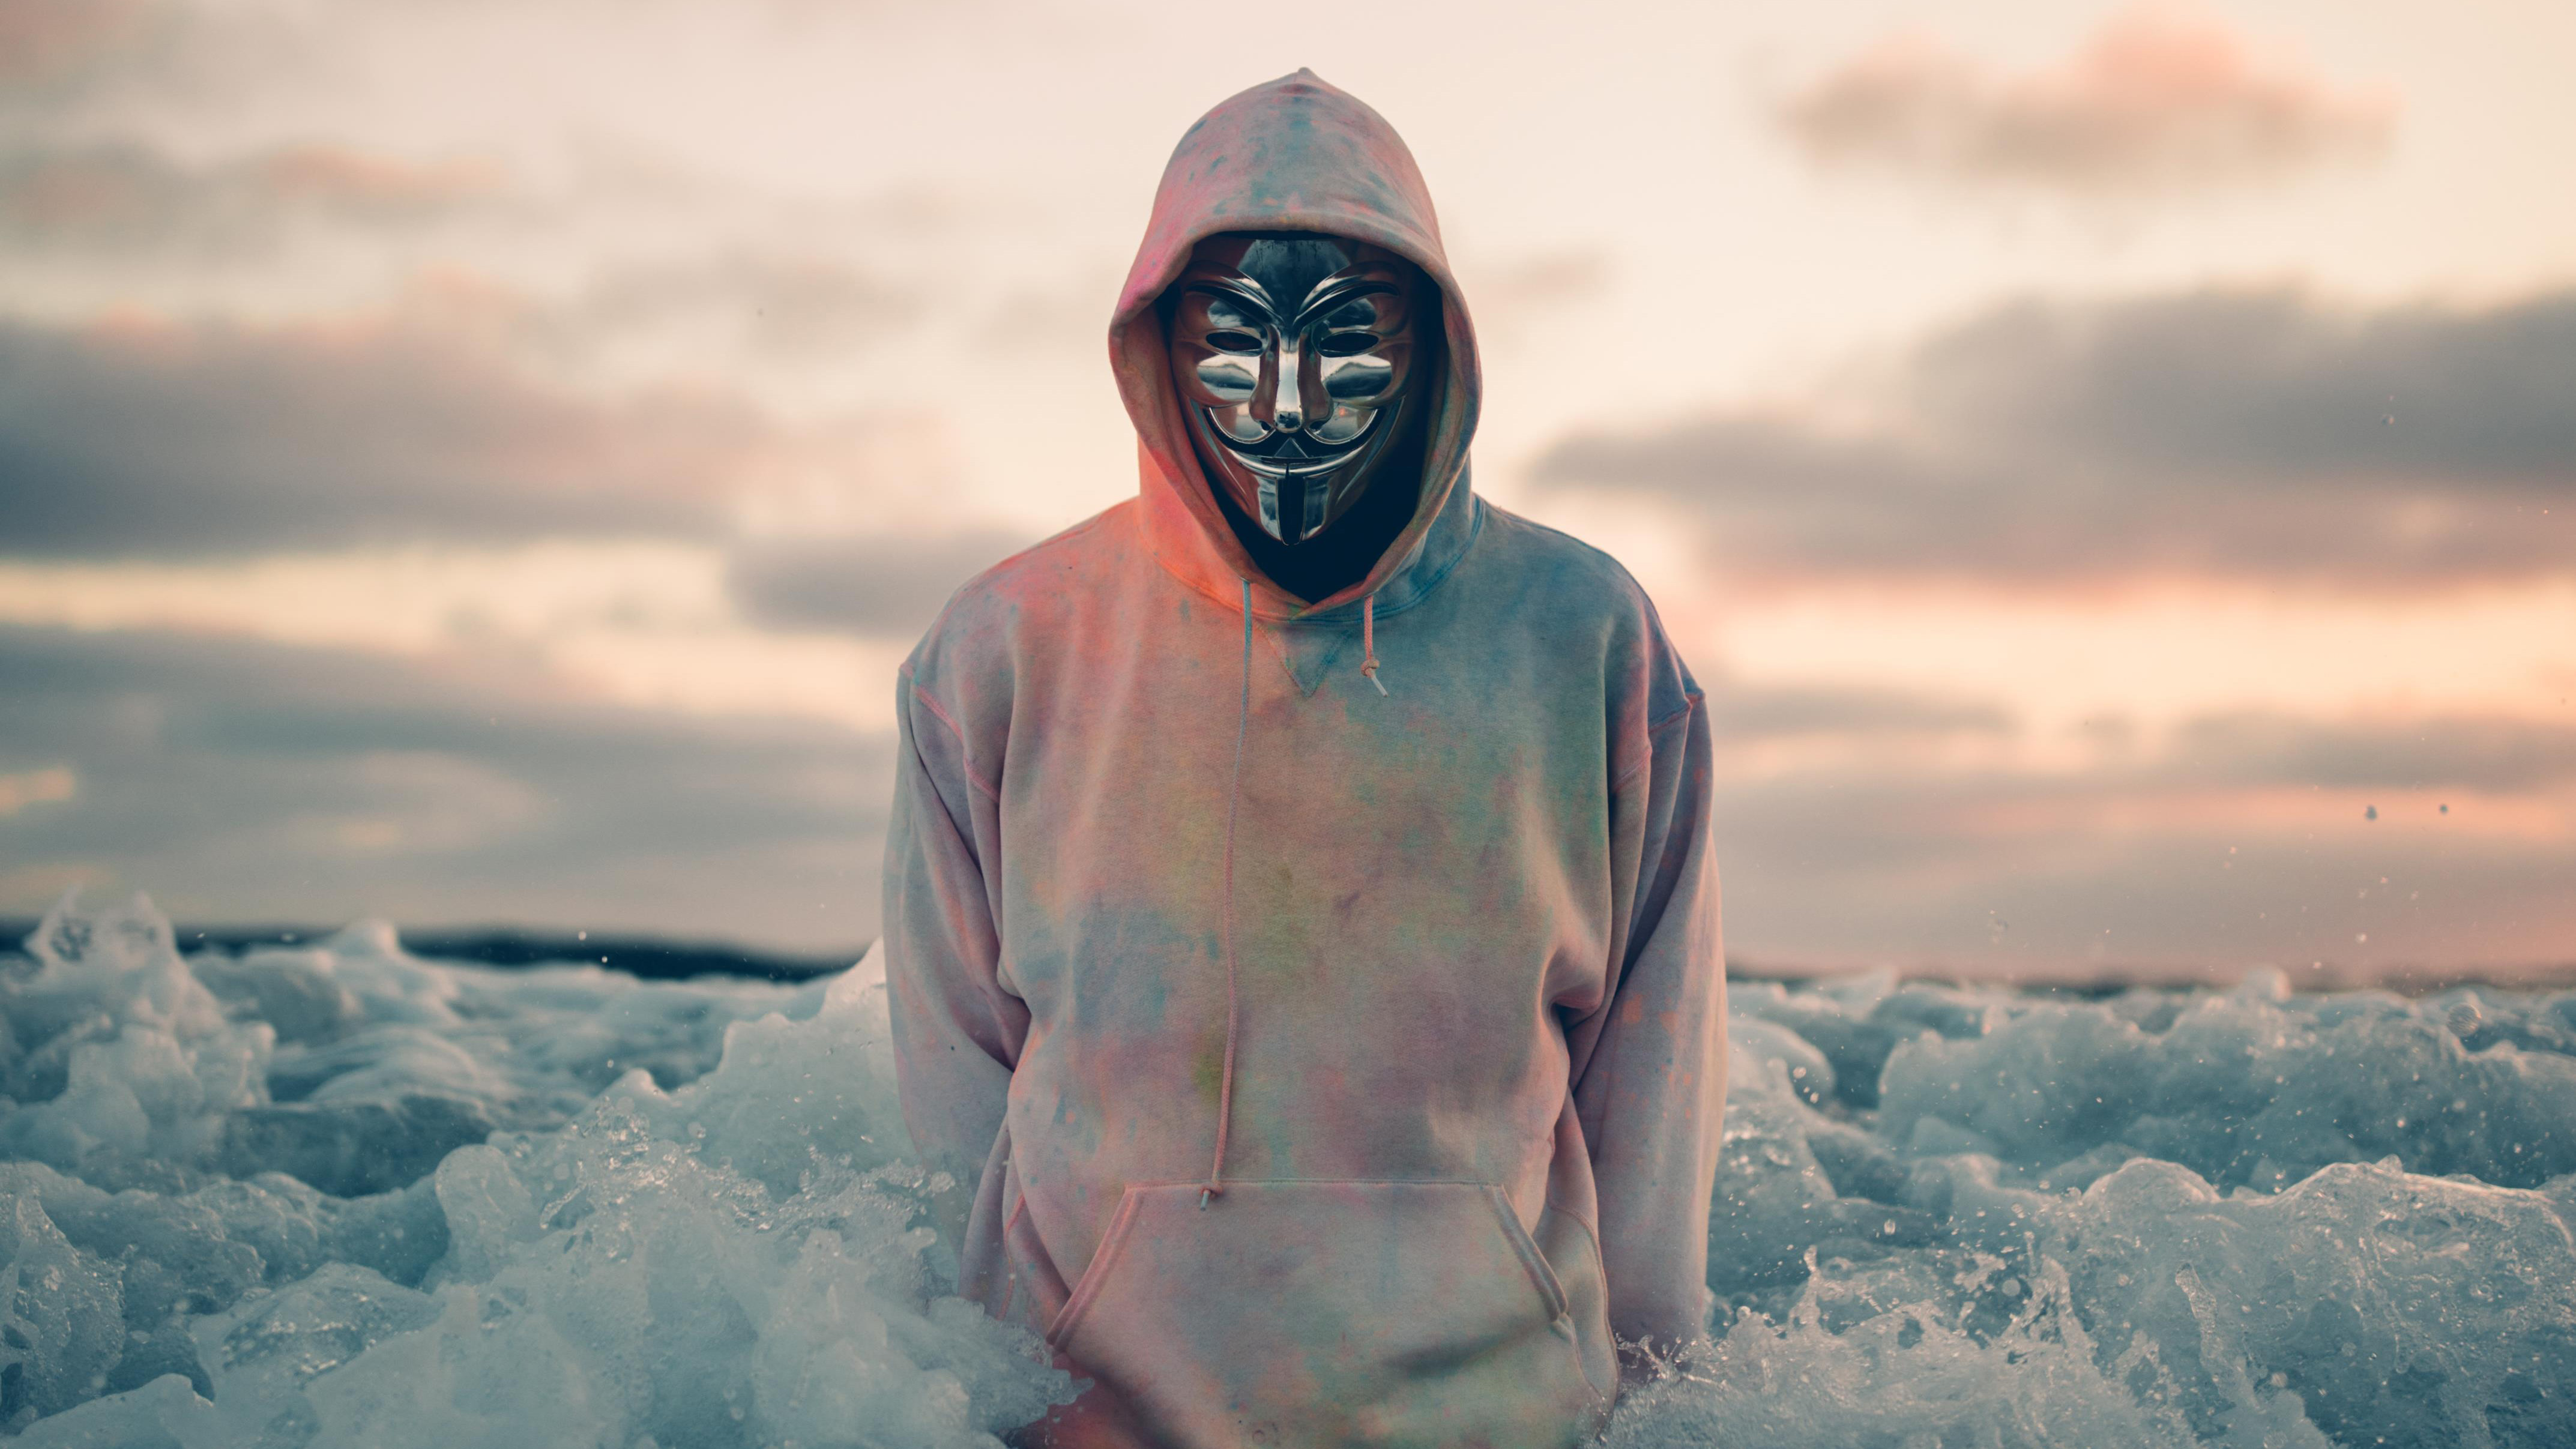 Anonymous hd others 4k wallpapers images backgrounds - Anonymous wallpaper full hd ...